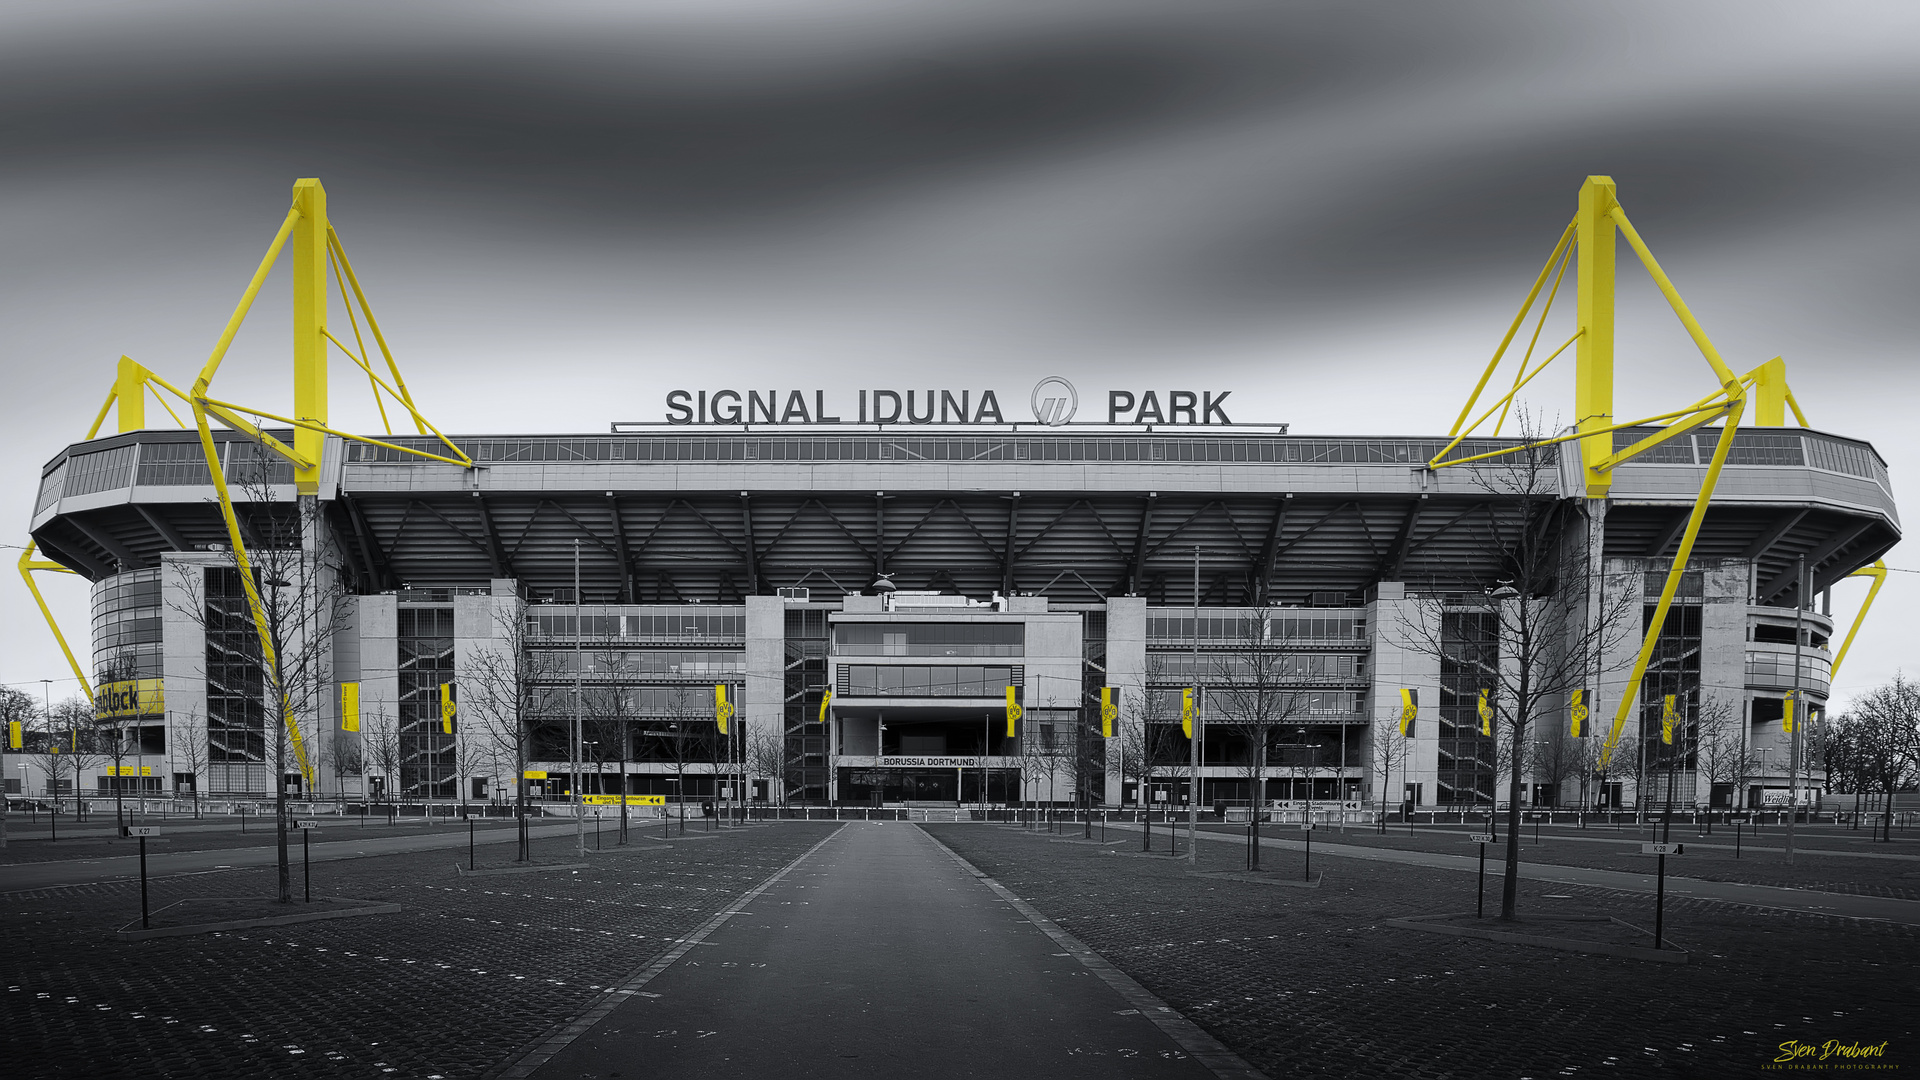 signal iduna park foto bild architektur profanbauten sportst tten bilder auf fotocommunity. Black Bedroom Furniture Sets. Home Design Ideas